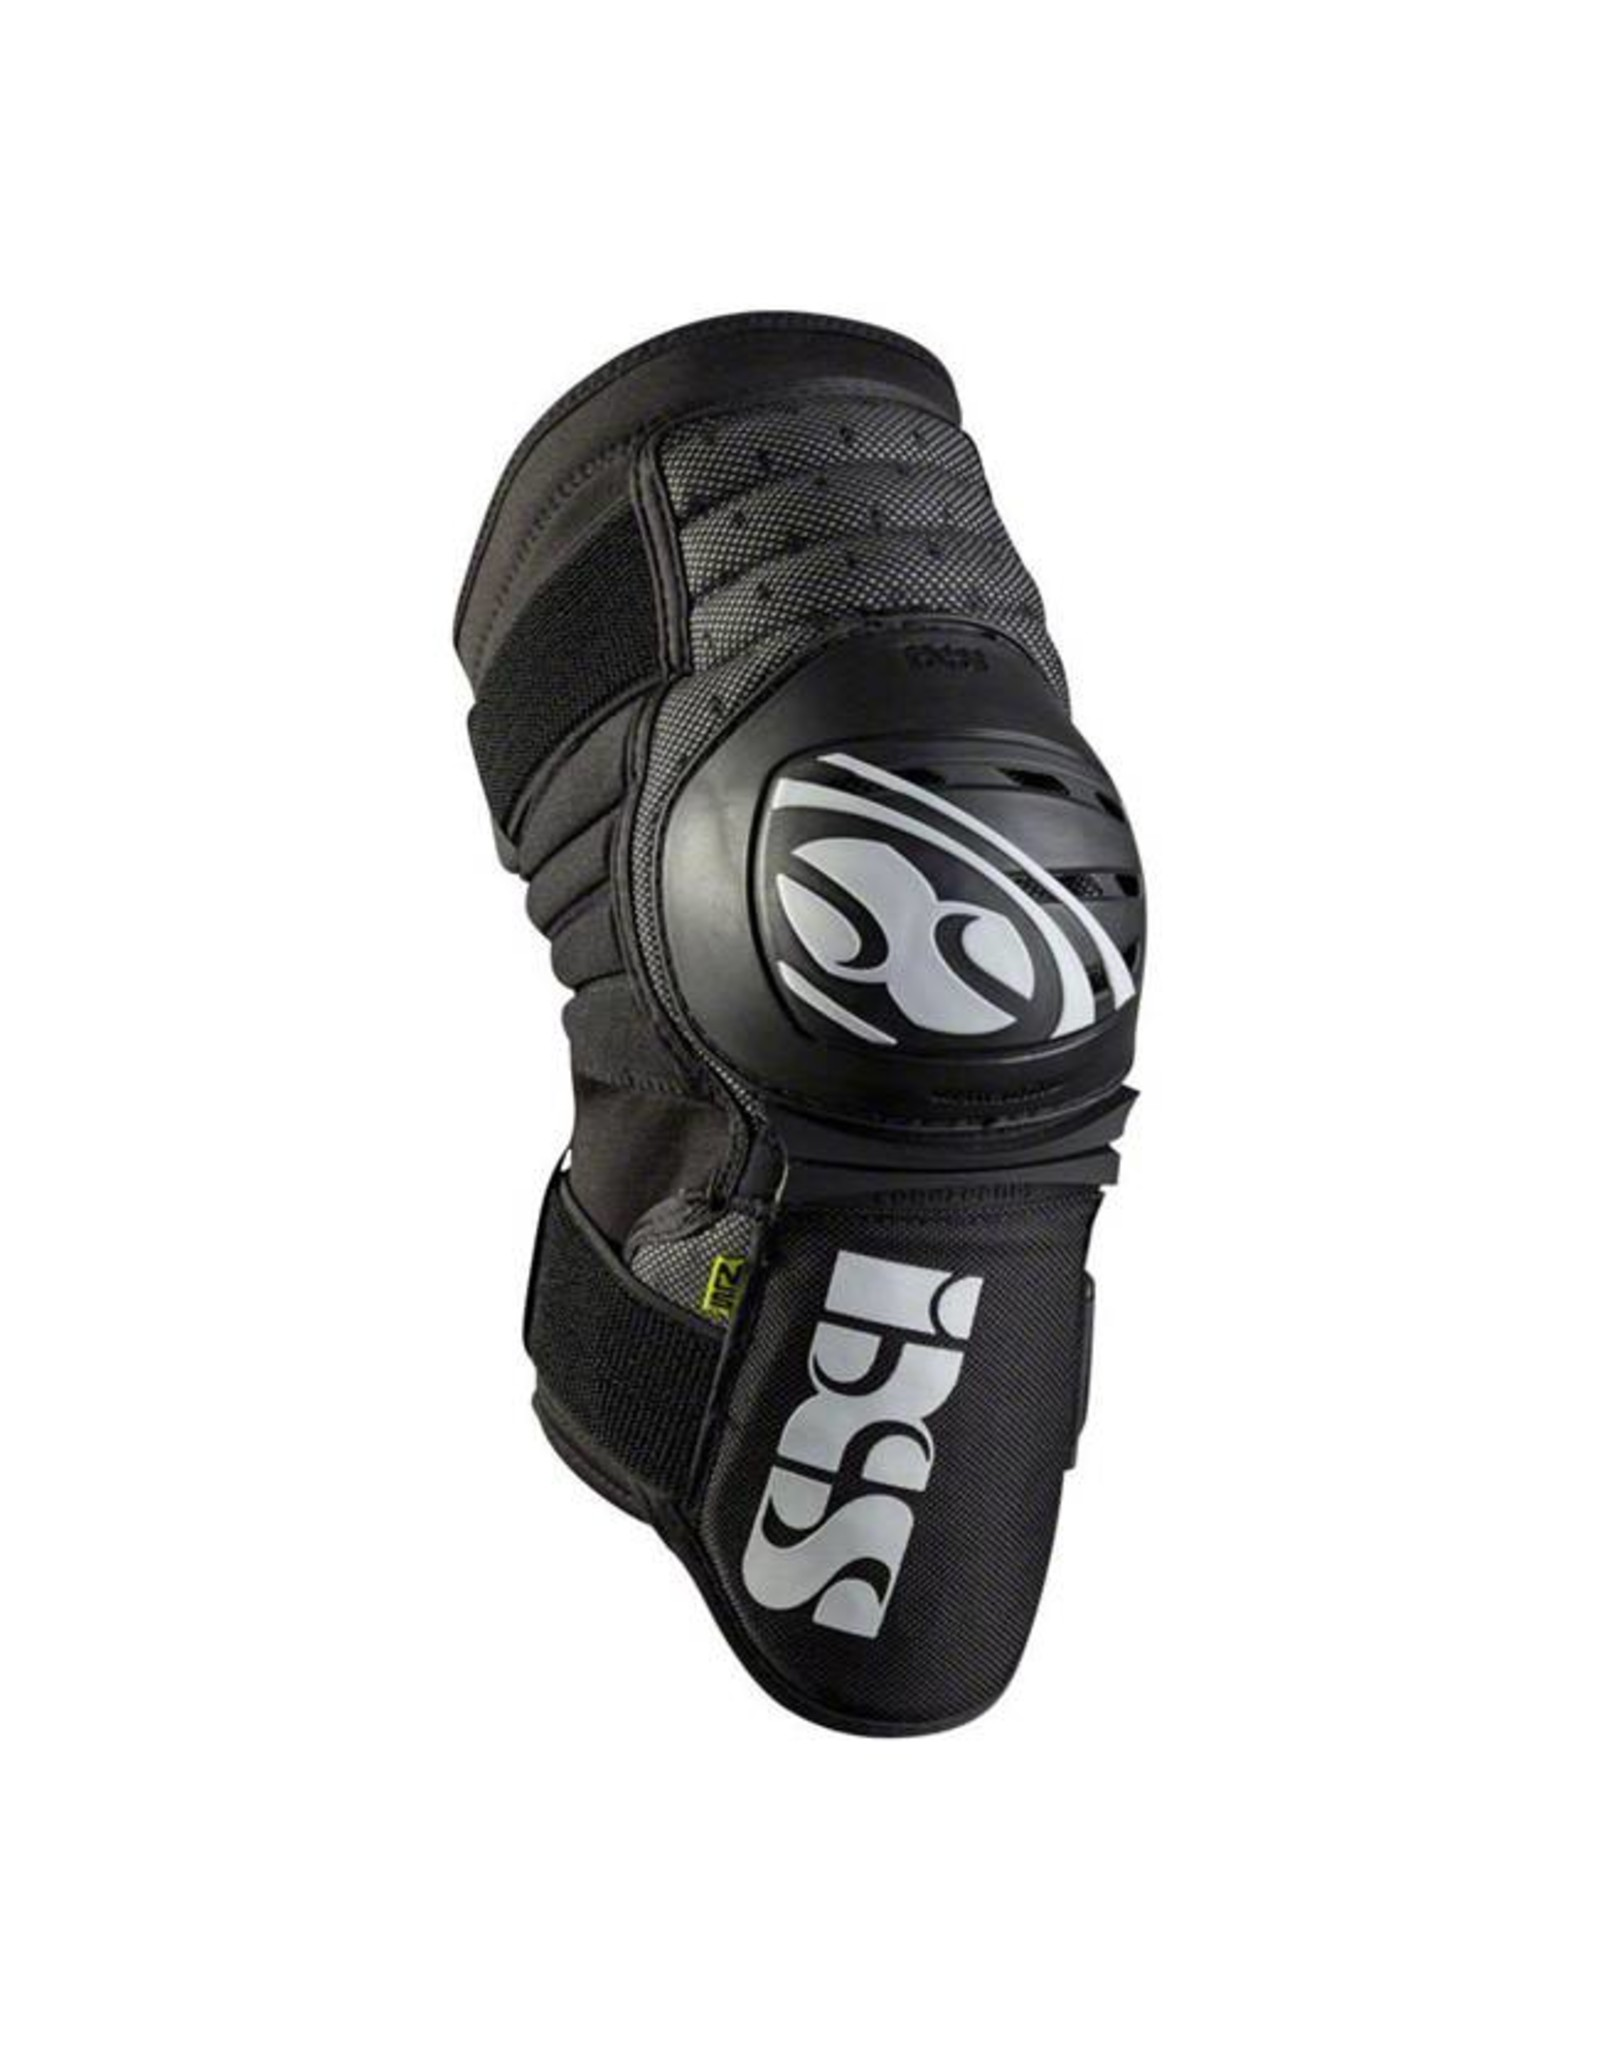 IXS iXS Dagger Knee Guard: Black, SM